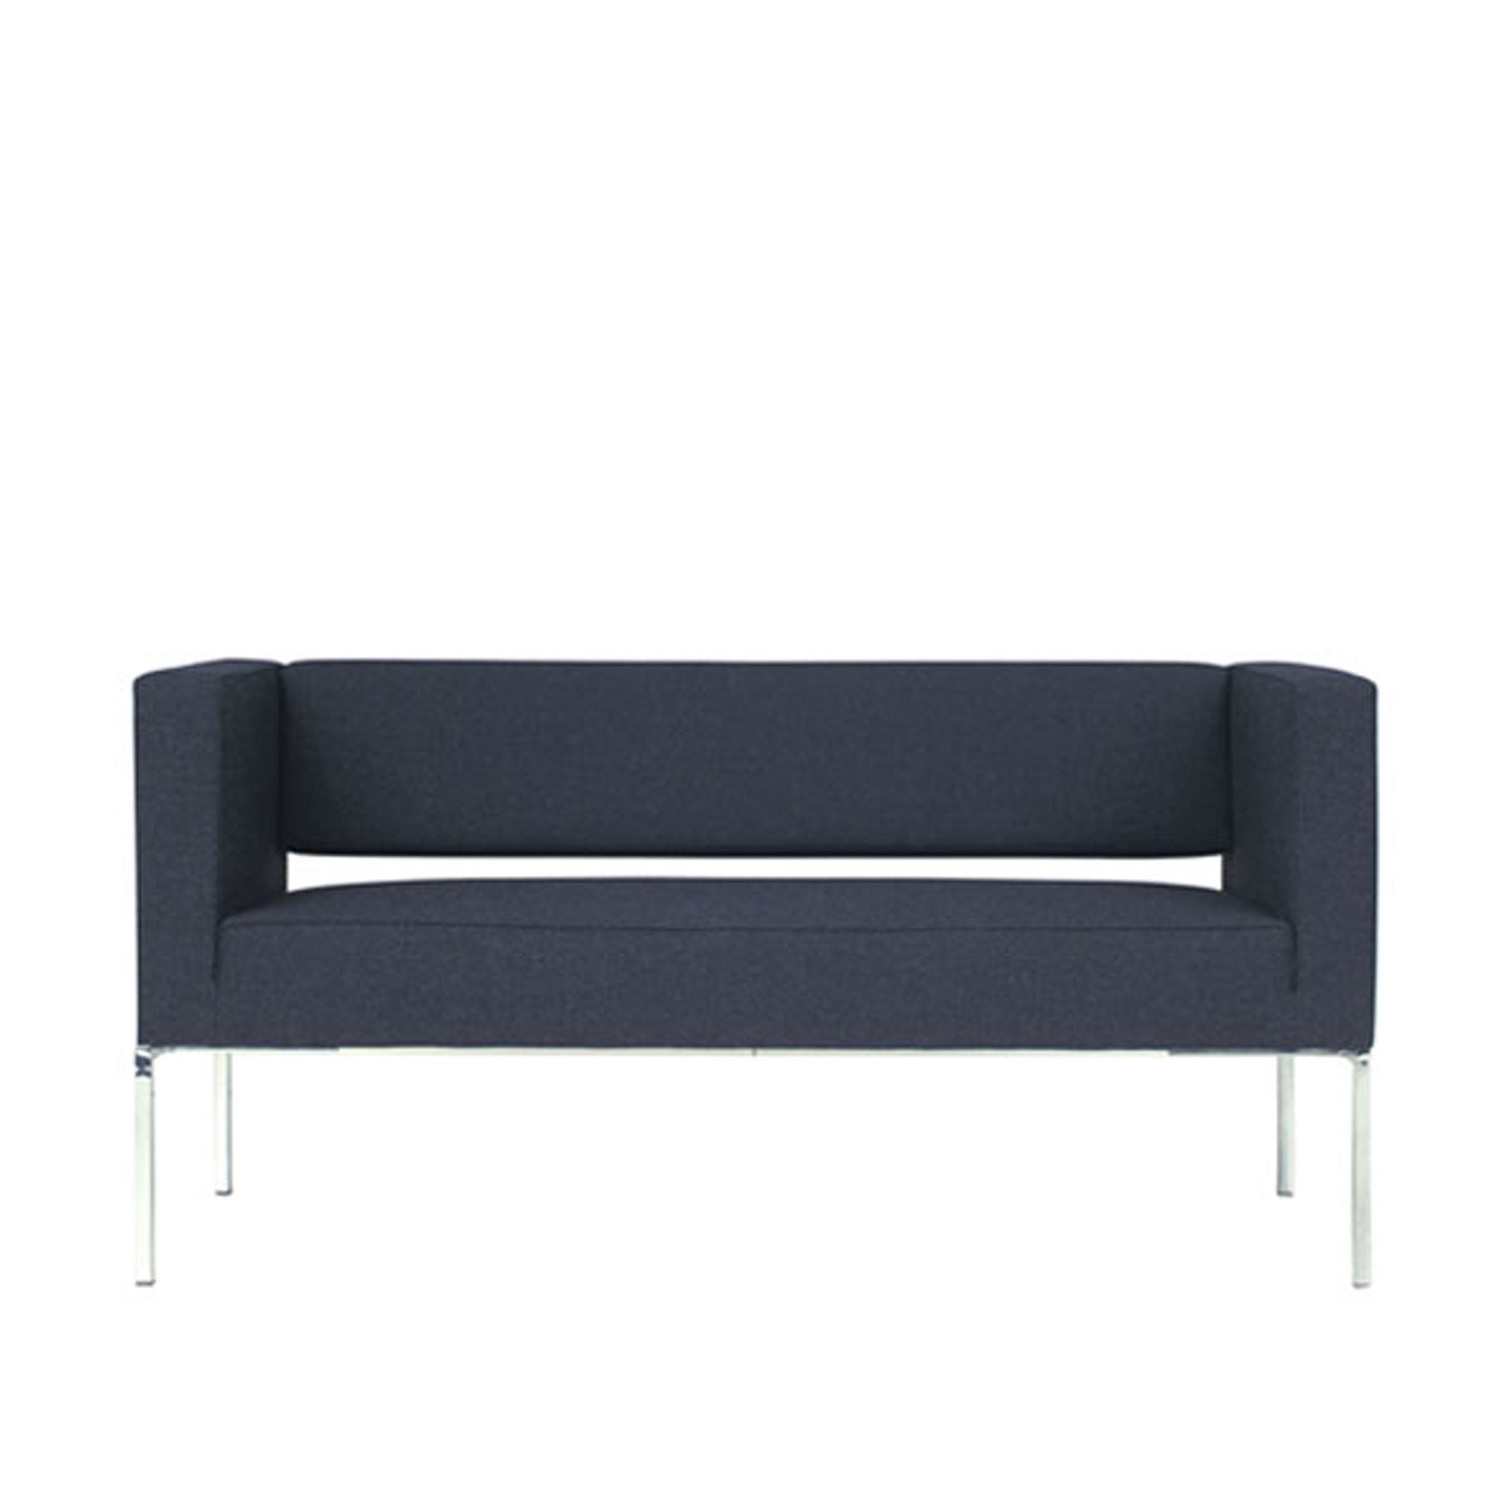 Rilasso Soft Seating